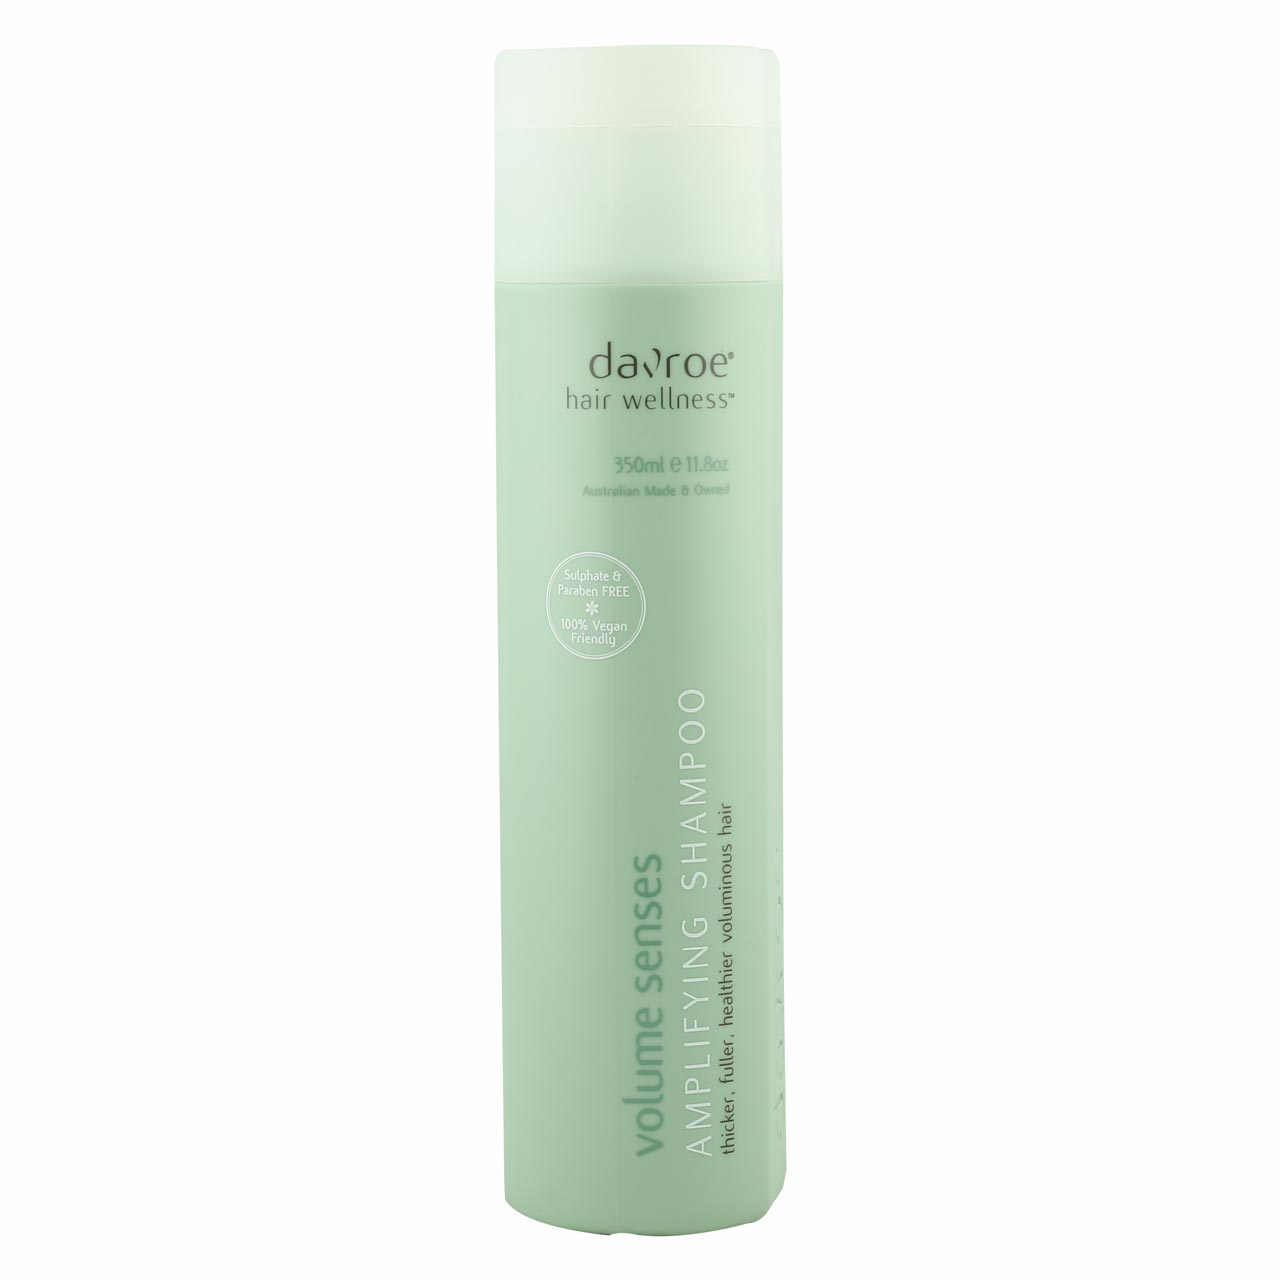 Davroe Amplifying Shampoo -Volume Senses